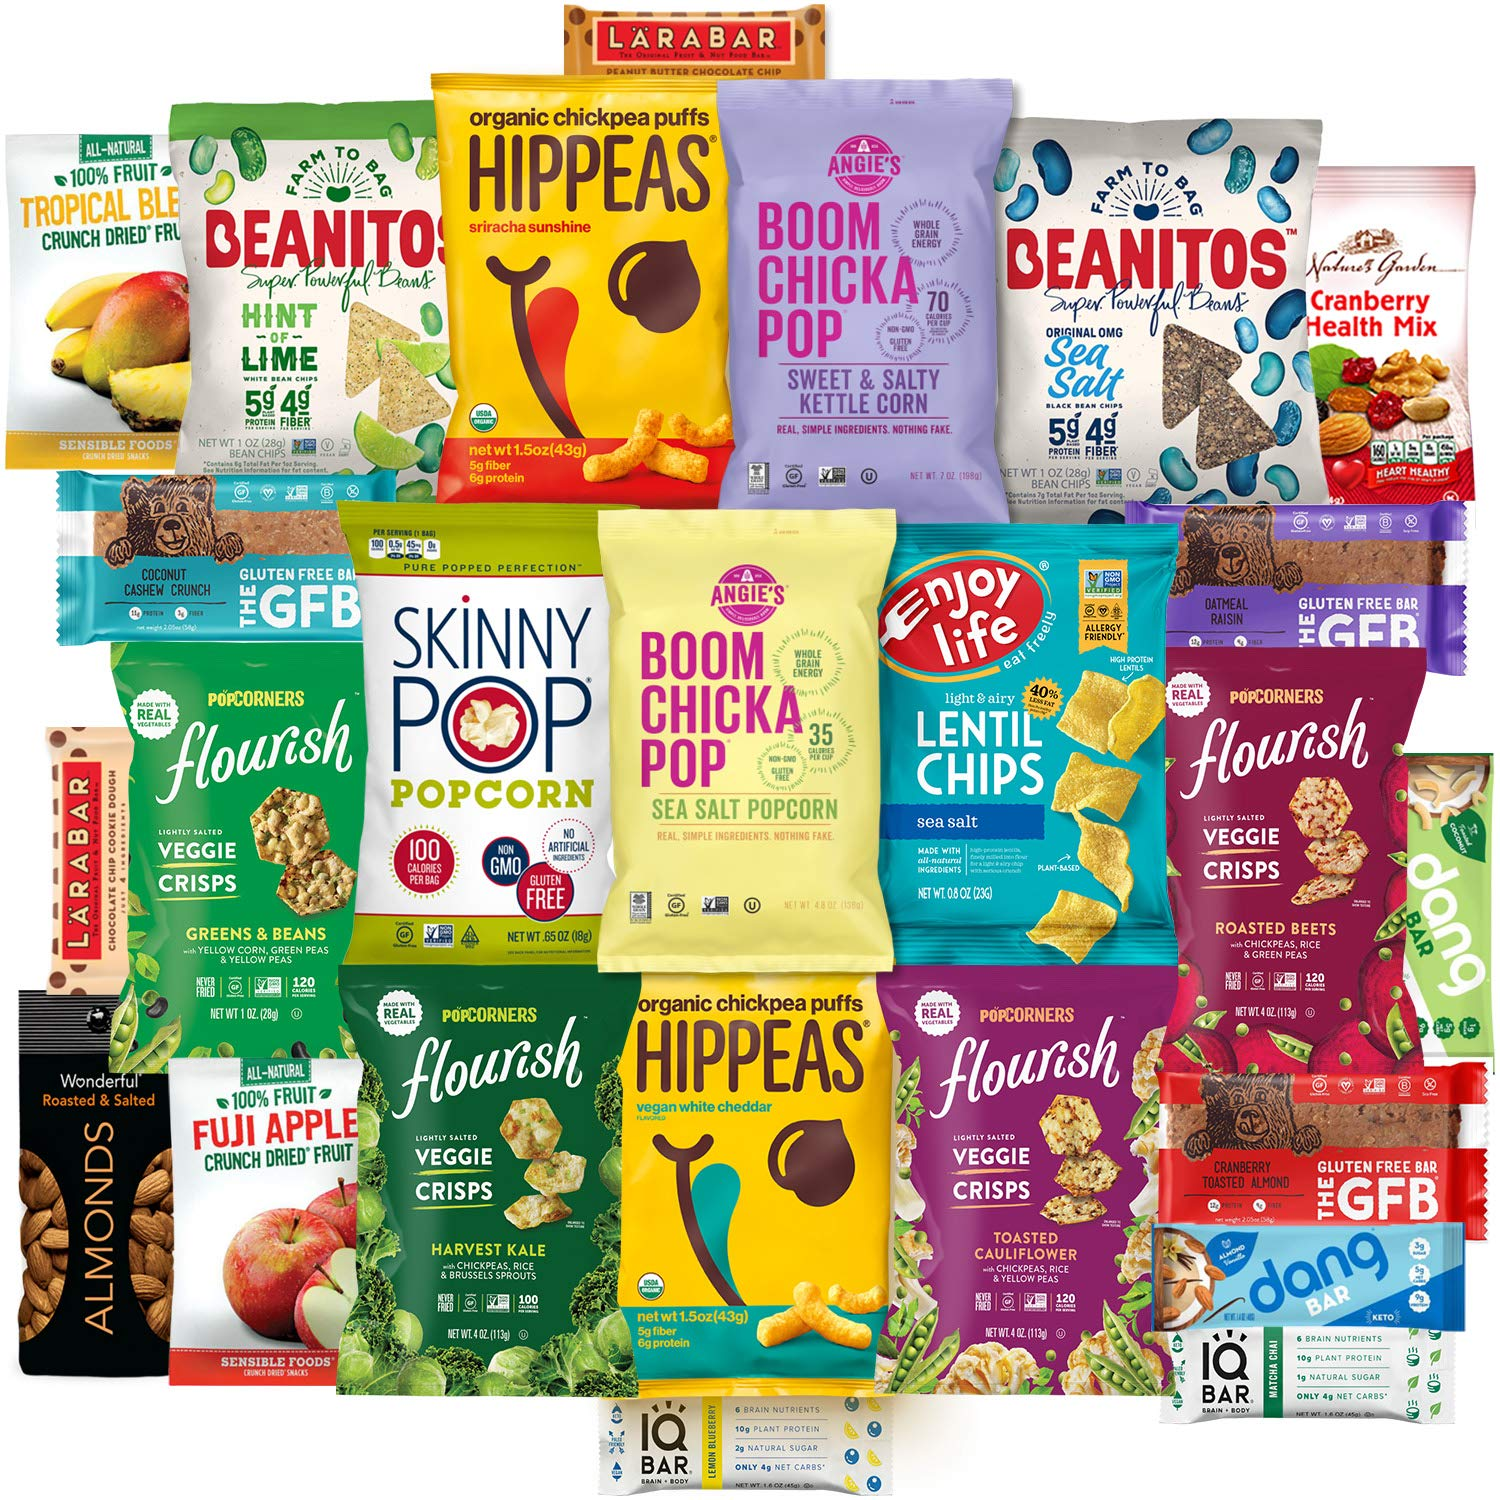 Healthy Vegan Snacks Care Package (25 Count) - Mixed Premium Variety Pack - Includes Assortment of Chickpea Puffs, Popcorn, Chips, Trail Mix, Fruit, Health Bars - Multiple Flavors Fun Snack Gift Box by Snacks Generation (Image #1)